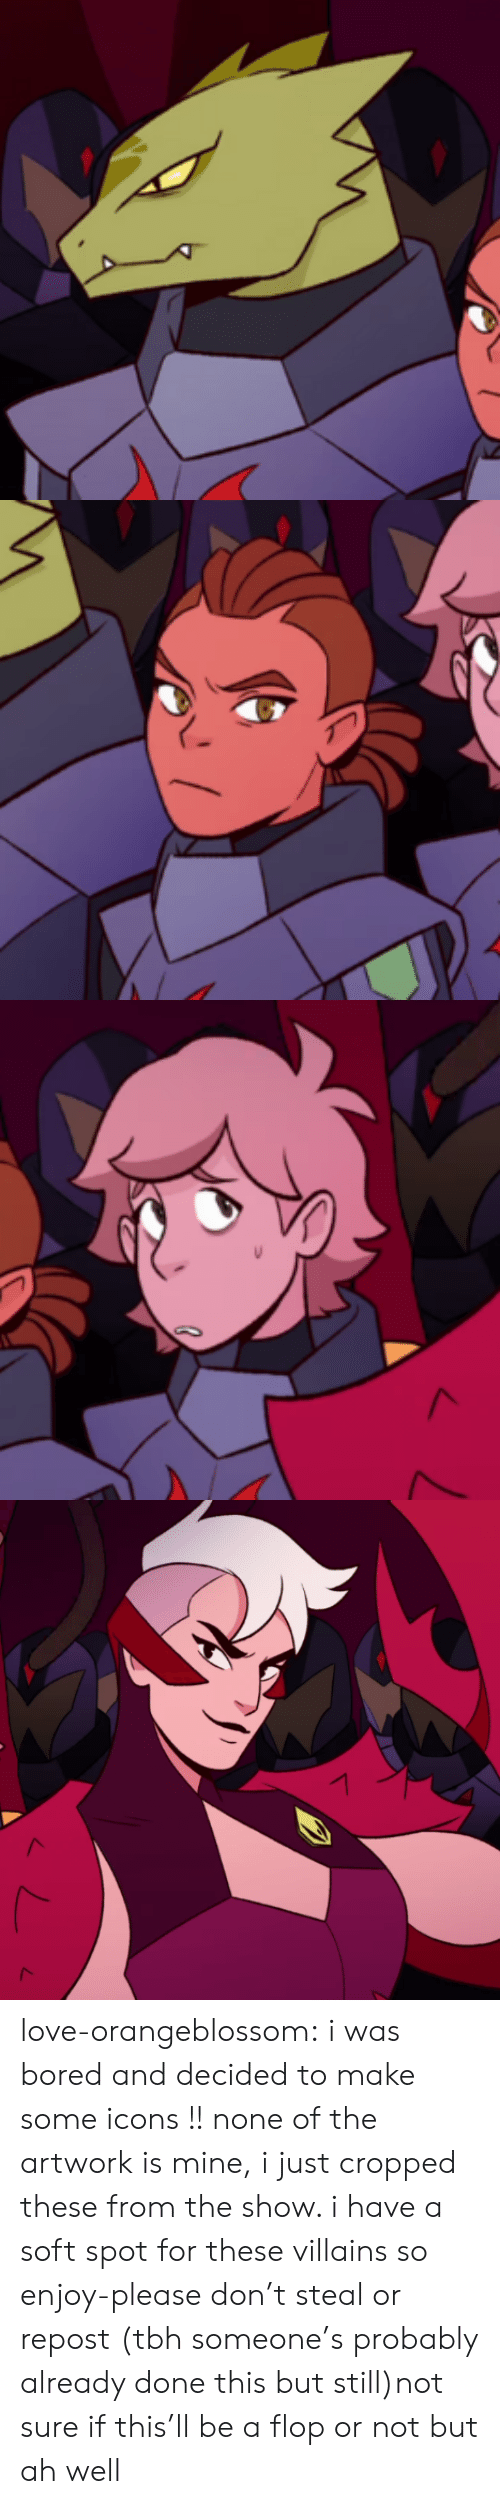 Bored, Love, and Tbh: love-orangeblossom:  i was bored and decided to make some icons !! none of the artwork is mine, i just cropped these from the show. i have a soft spot for these villains so enjoy-please don't steal or repost (tbh someone's probably already done this but still)not sure if this'll be a flop or not but ah well